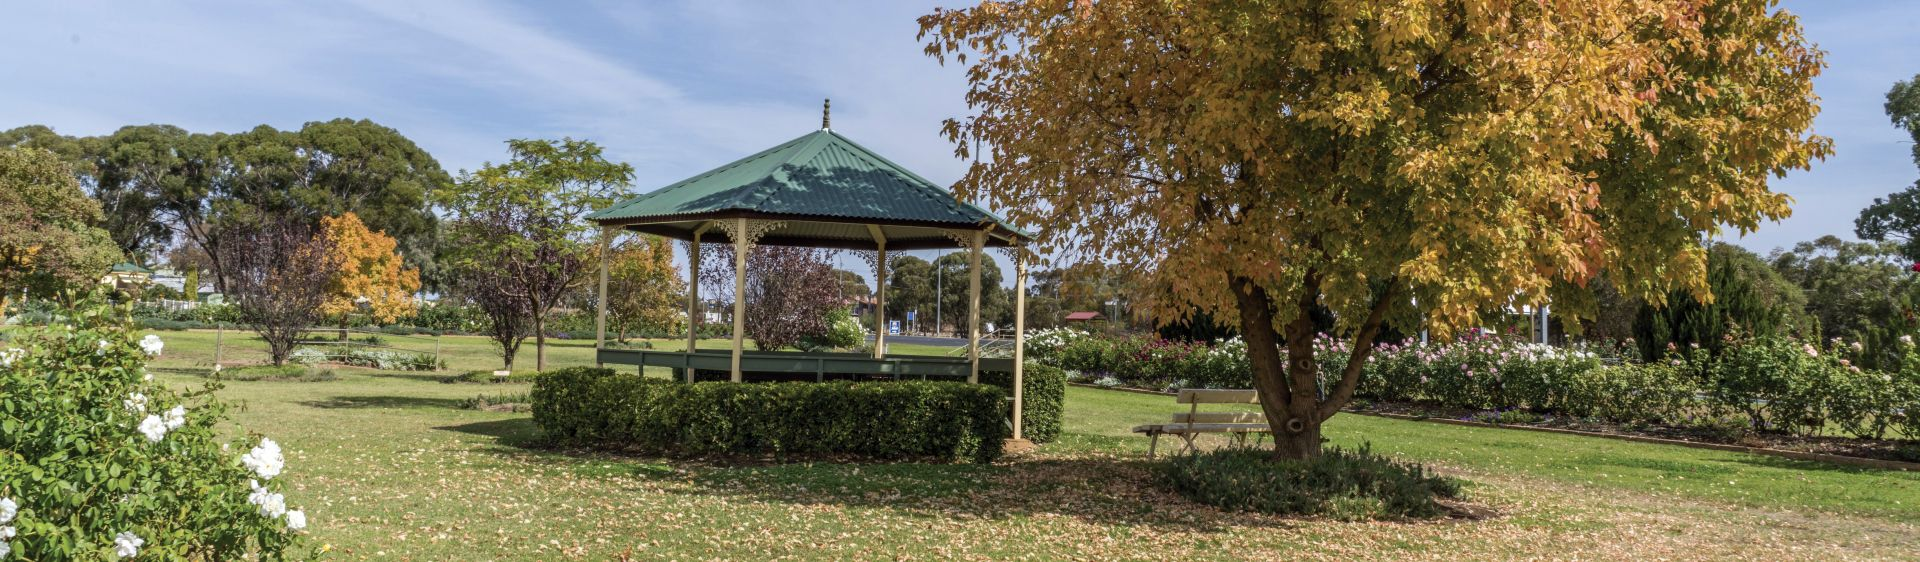 A Garden Club 2000 Rose Garden picnic shelter, West Wyalong